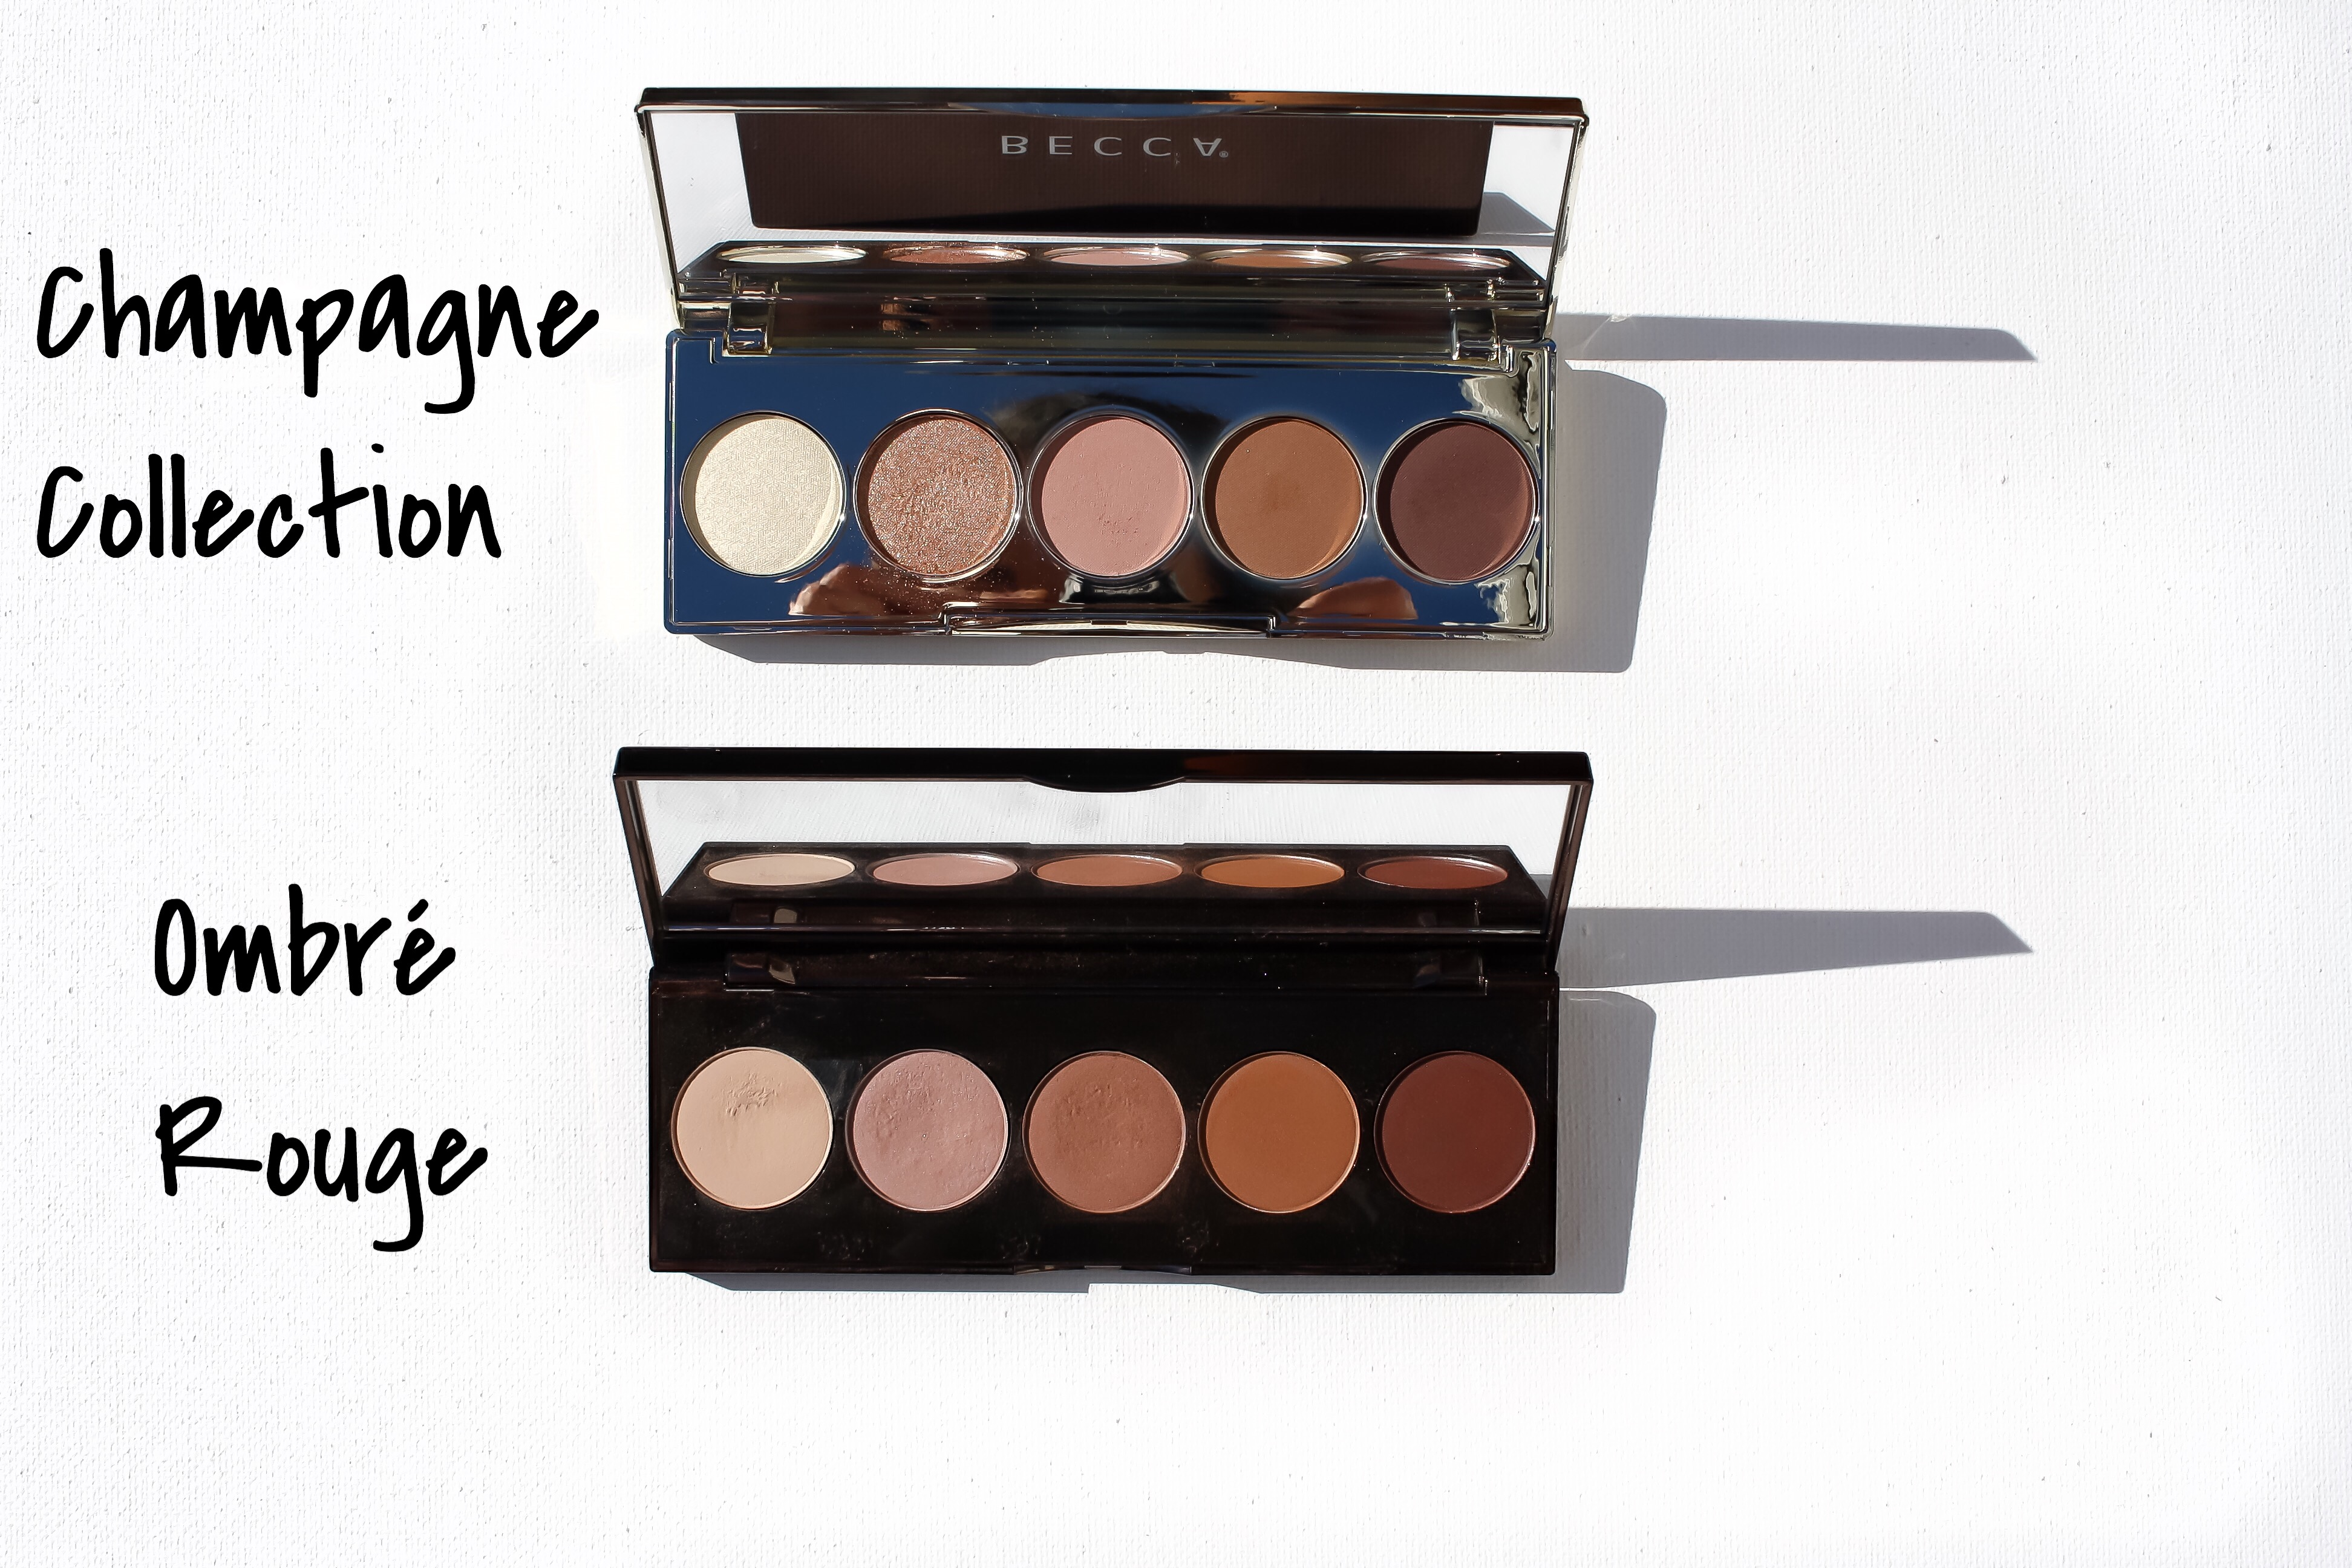 Jaclyn Hill x Becca Champagne Collection Eyeshadow Palette and Ombre Rouge Palette